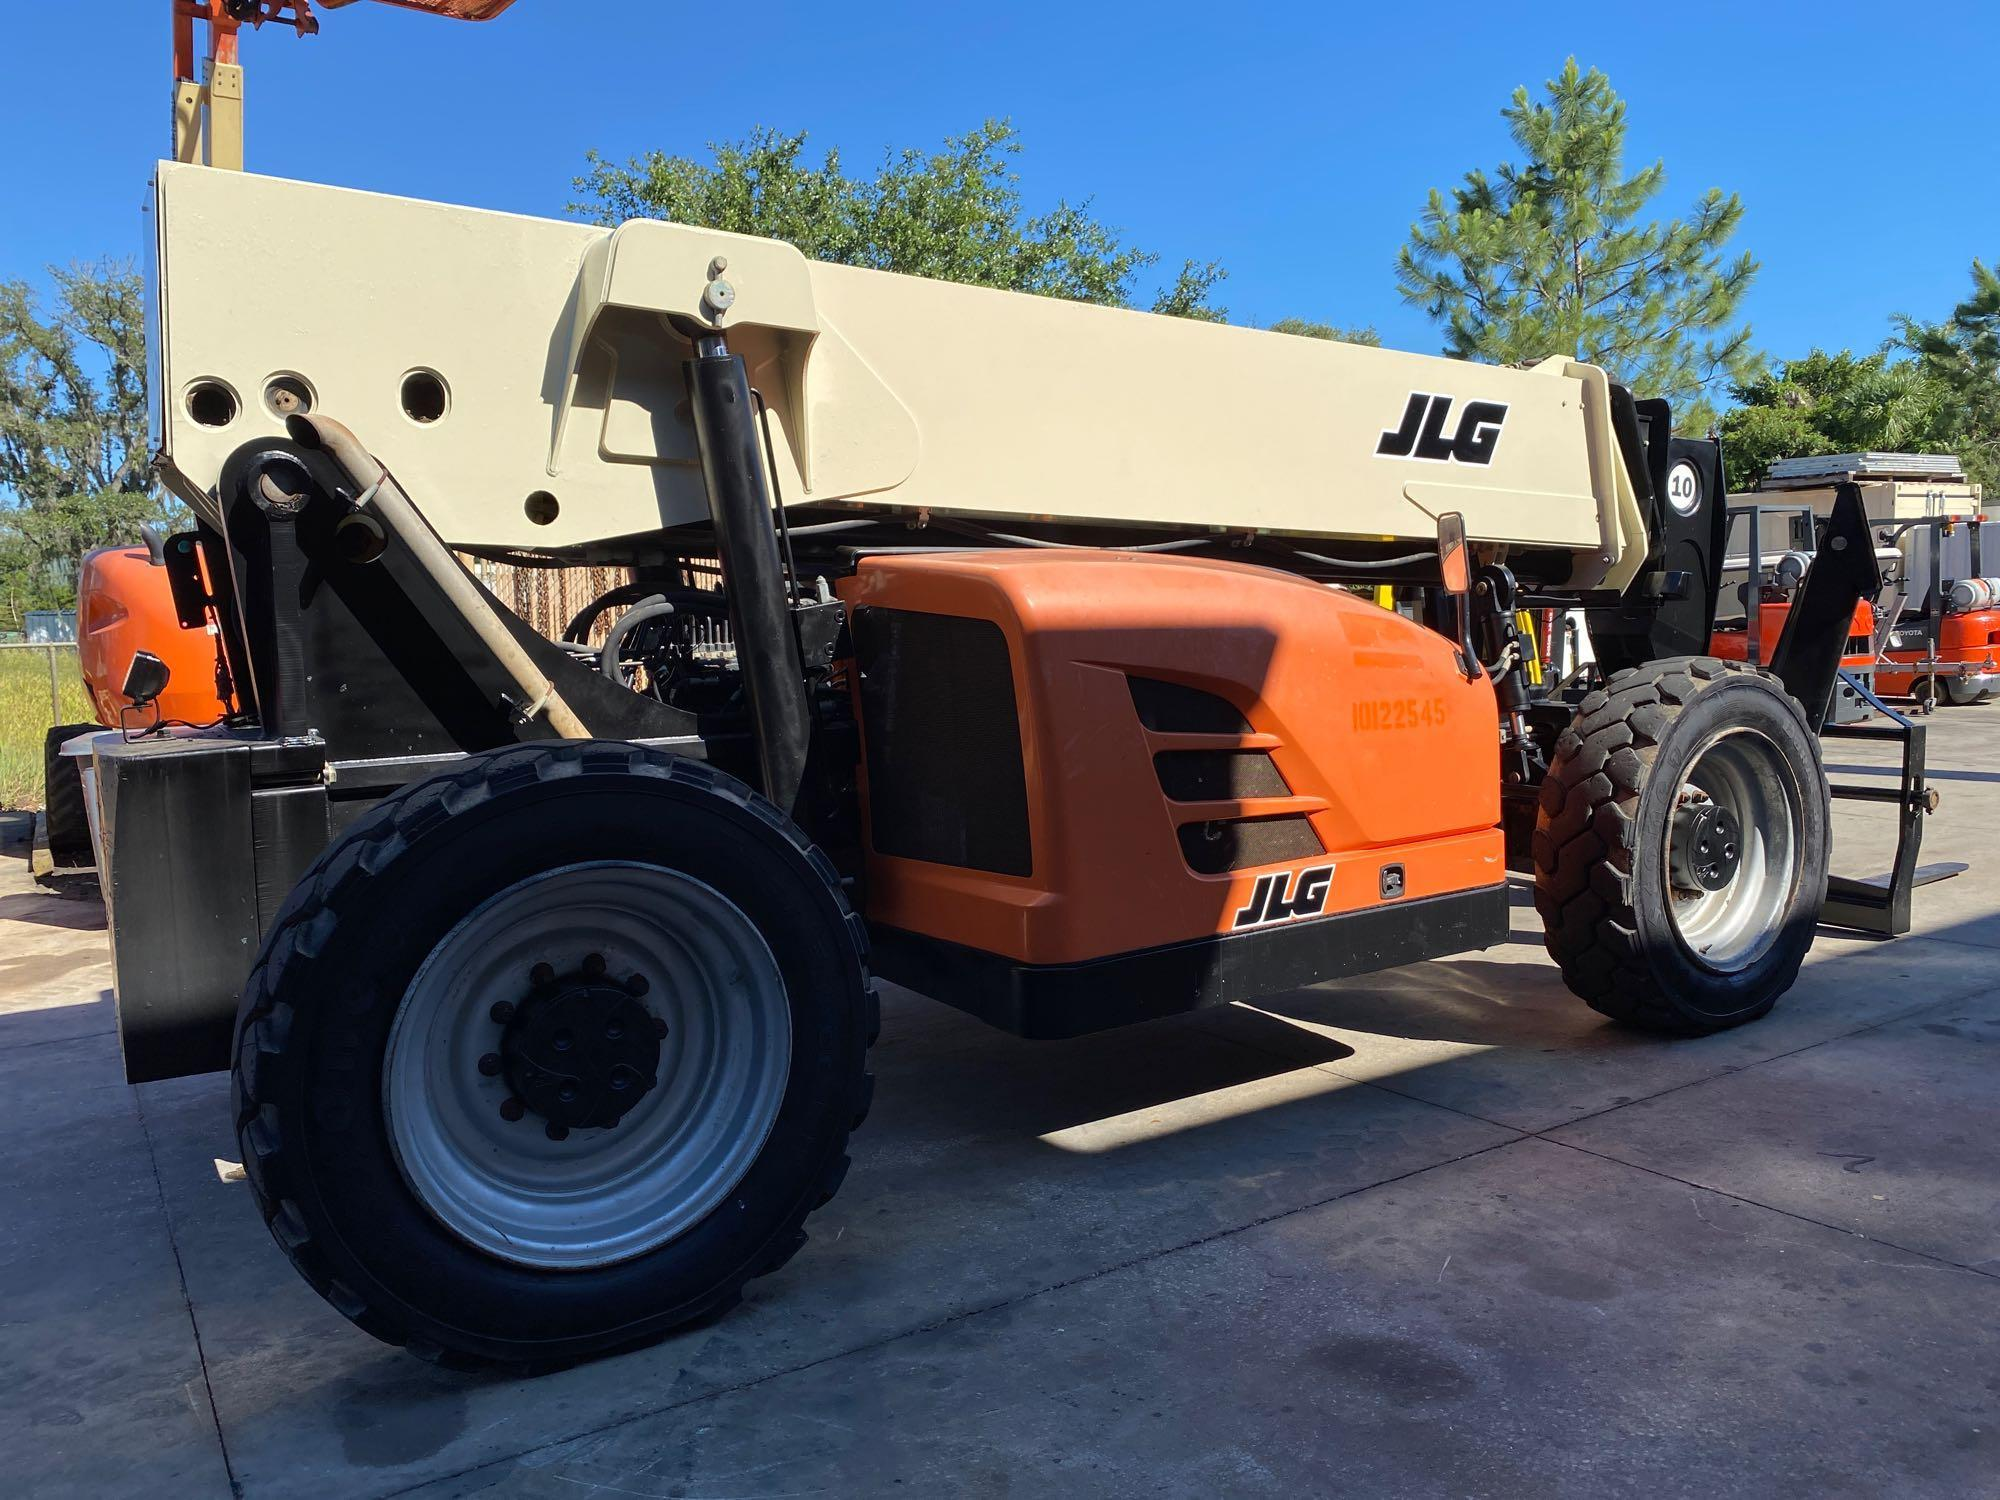 2013 JLG TELESCOPIC FORKLIFT MODEL G10-55A, 10,000 LB CAPACITY, OUTRIGGERS, 5,717.7 HOURS SHOWING, C - Image 13 of 16